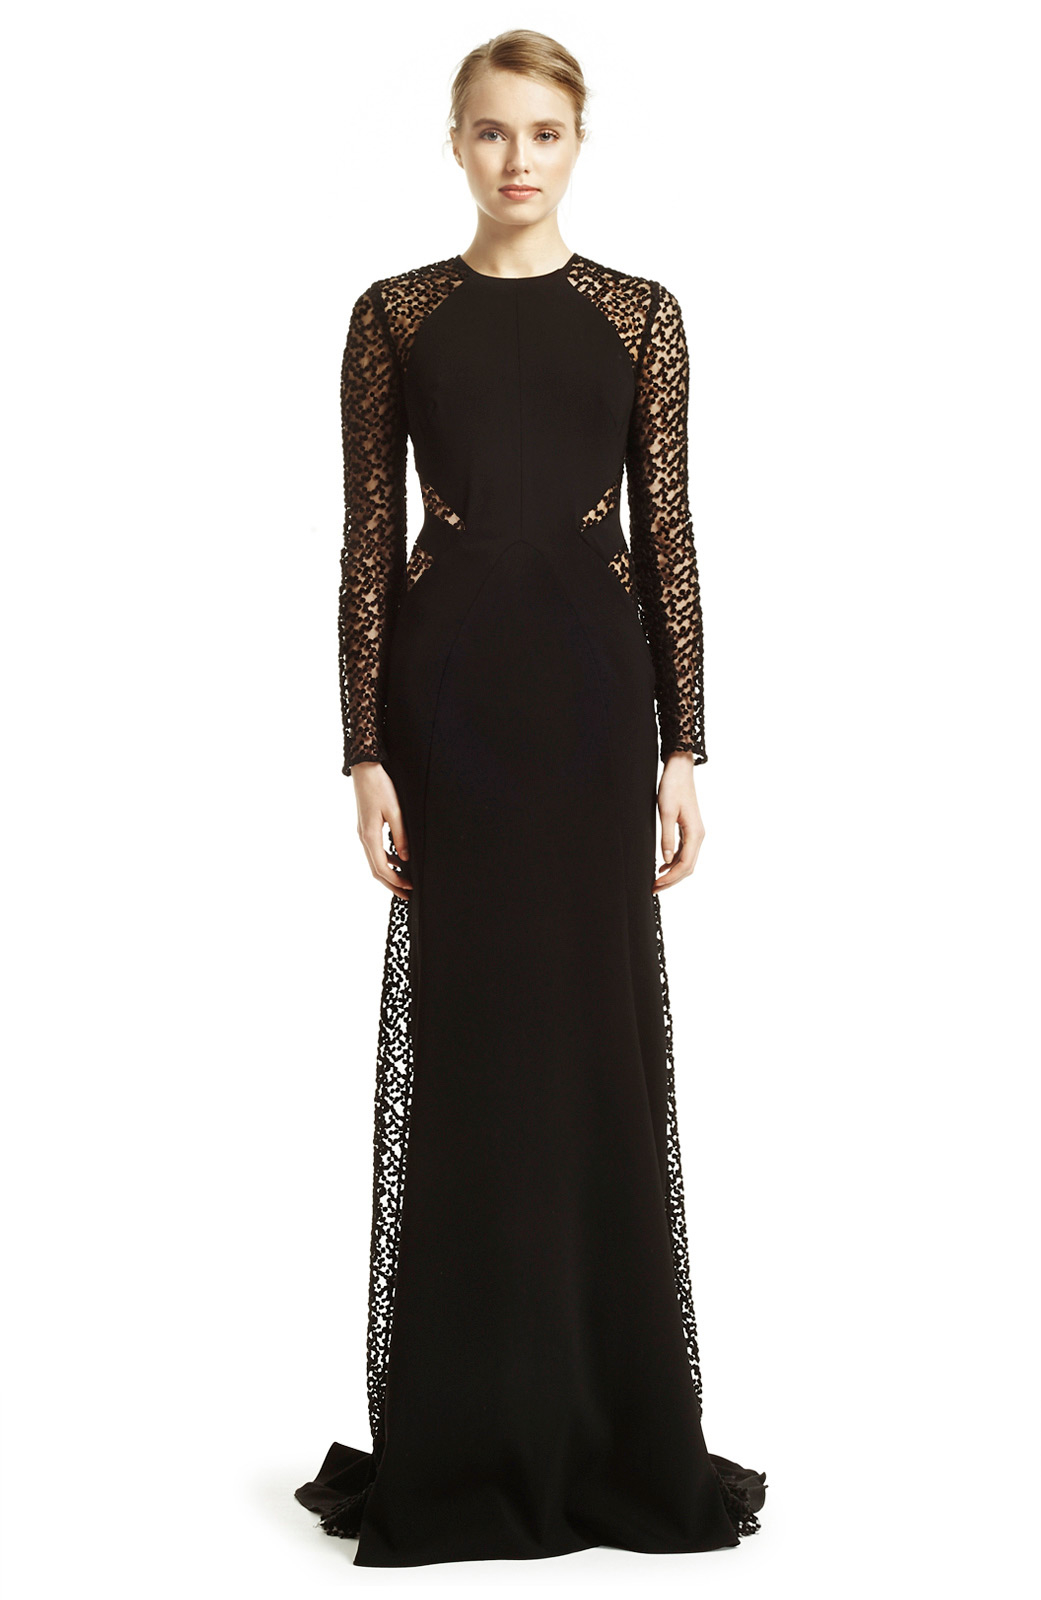 Lela rose Embroidered Dot Tulle Long Sleeve Gown in Black | Lyst